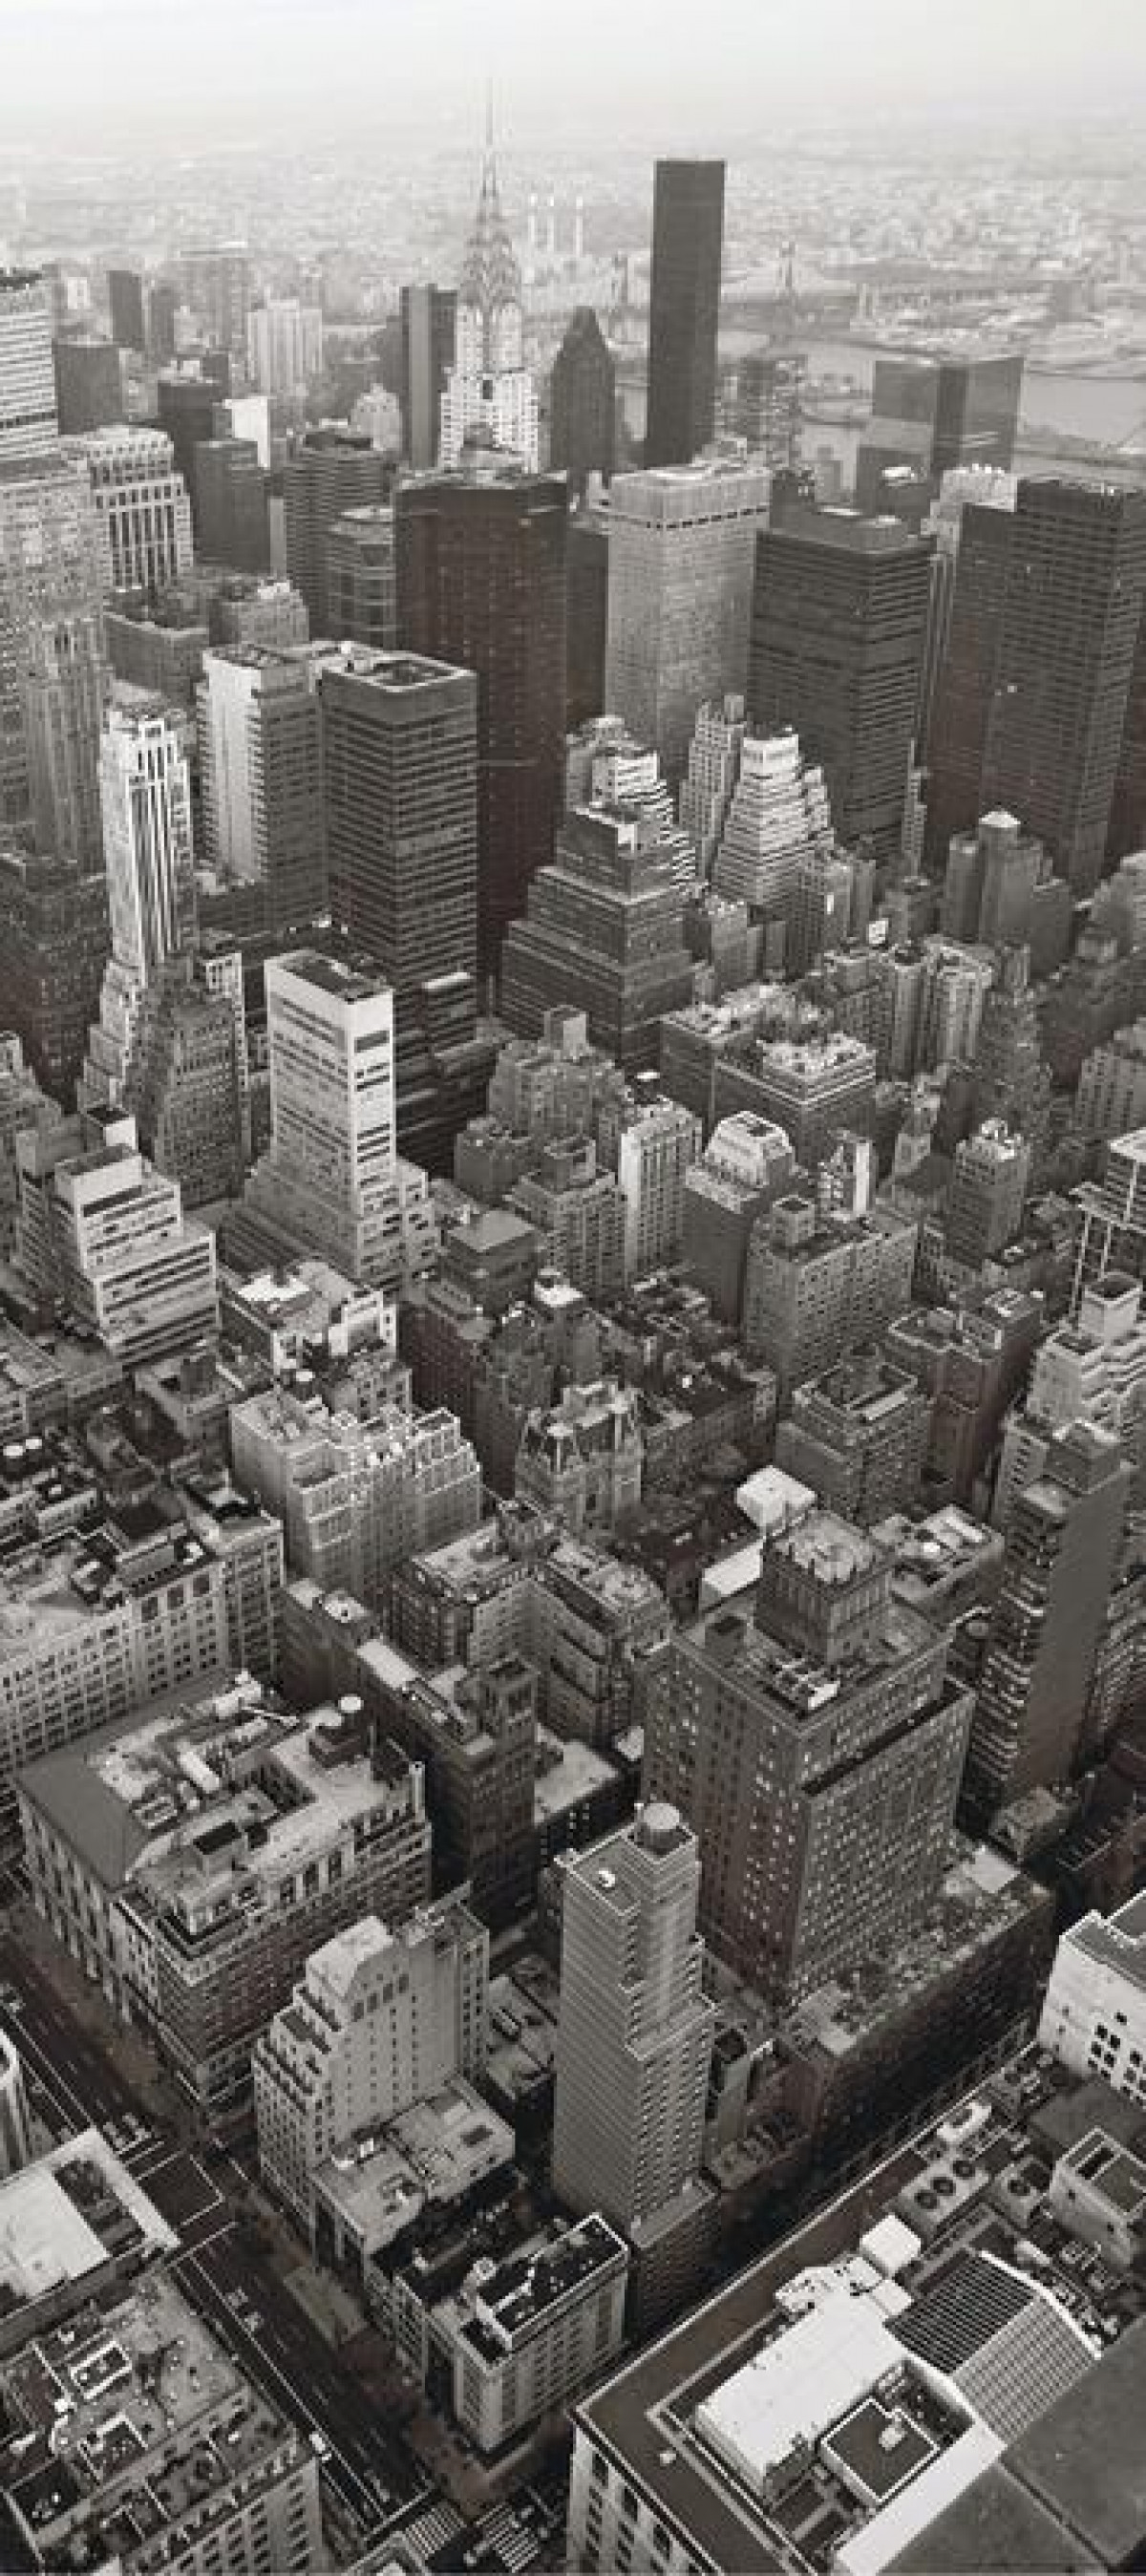 City from birds view, paper photo mural, 90x202 cm, 1 part